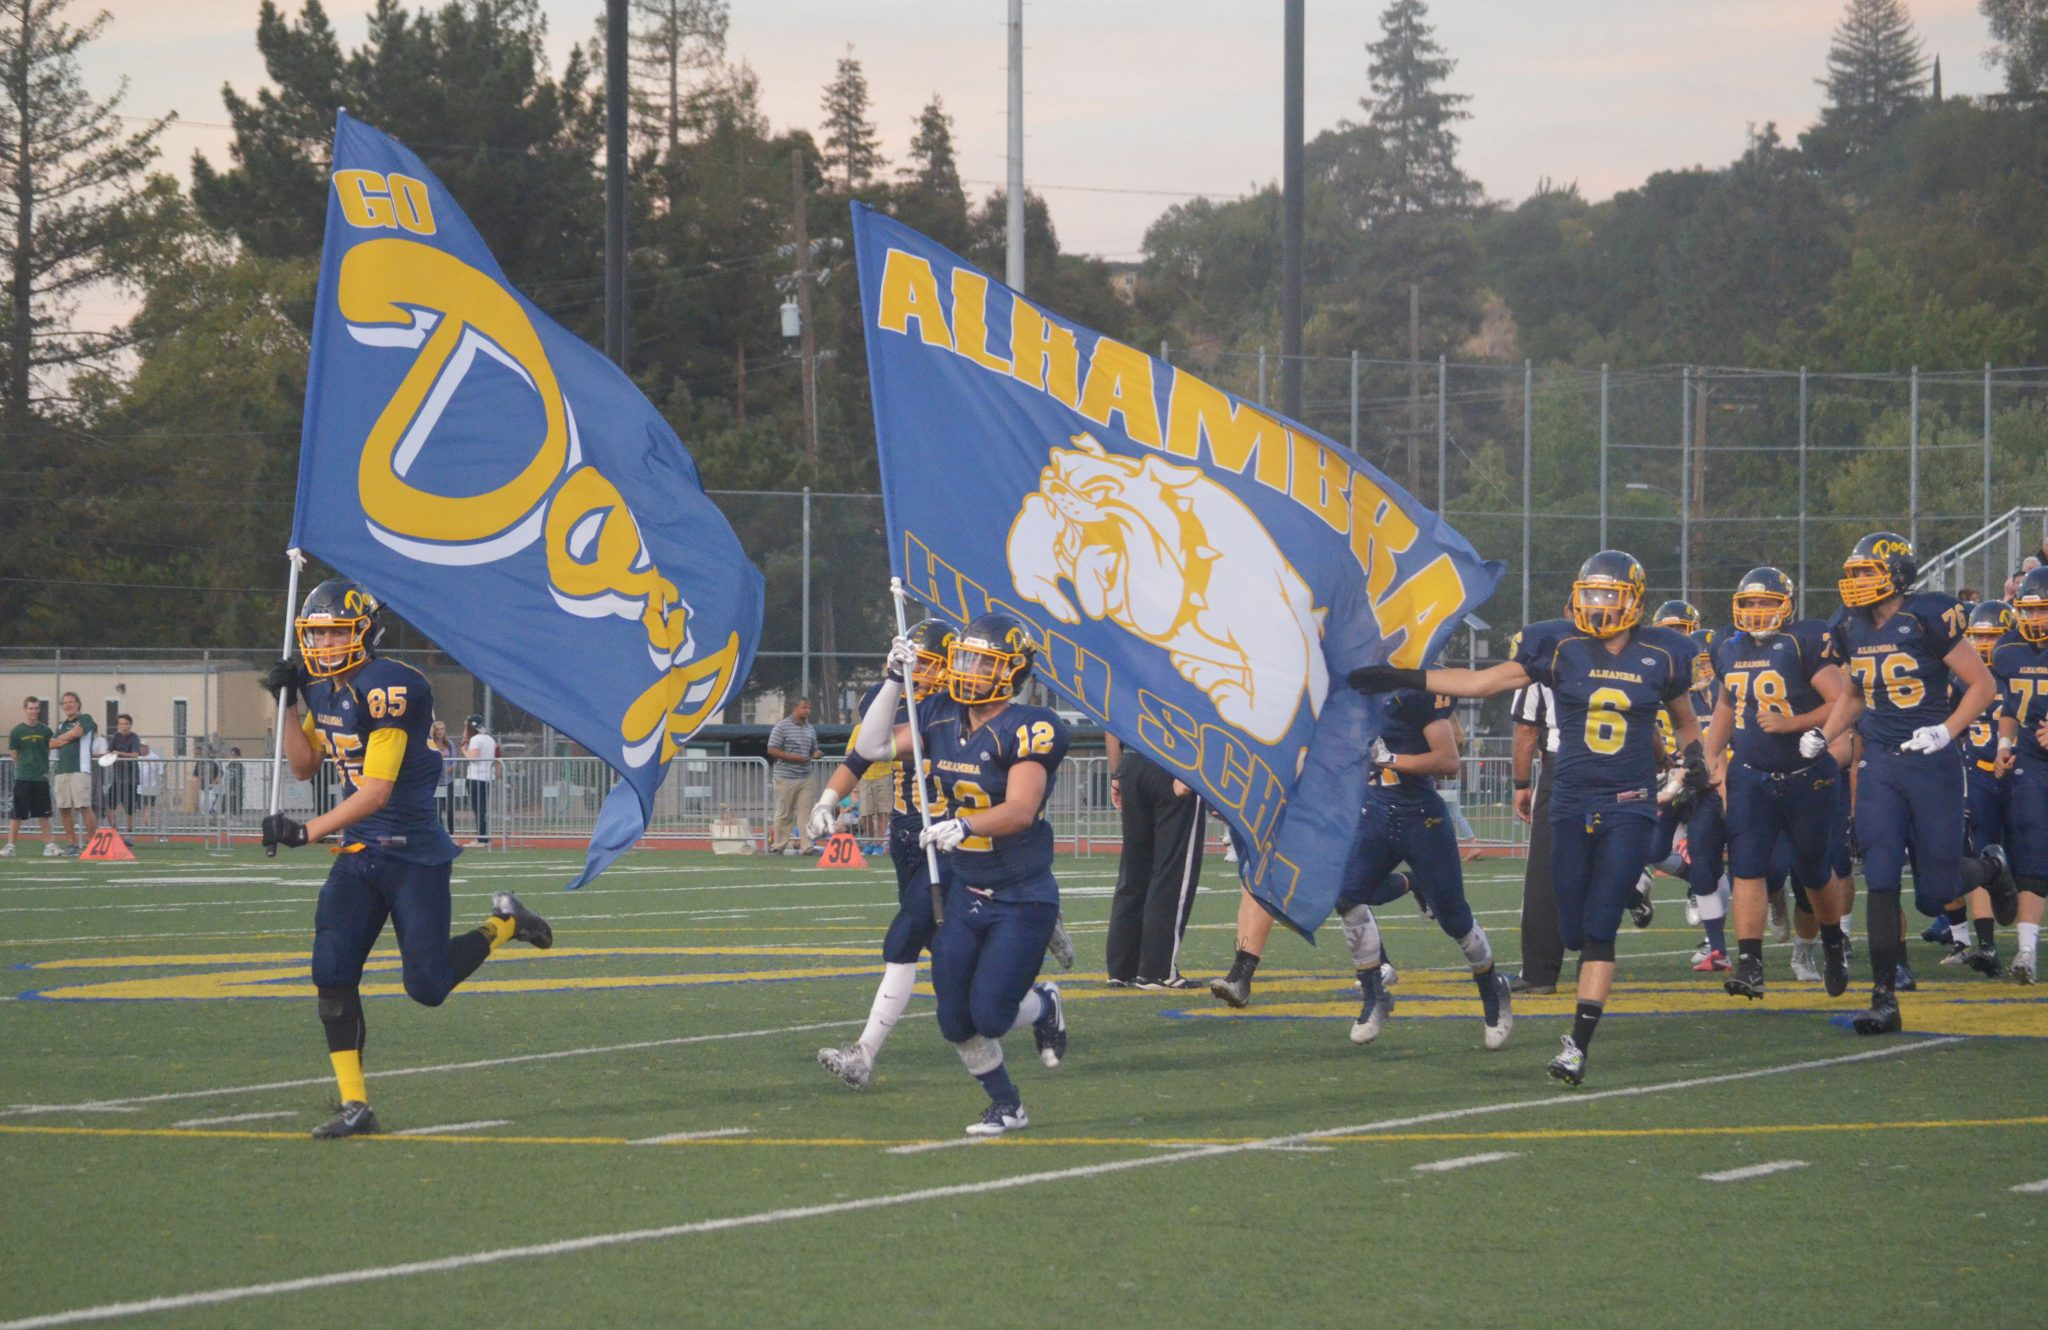 josh Abraham (85) and Jonathan McCart lead the Bulldogs out onto the field before the team's 42-19 loss to the Miramonte Matadors on Sept. 25, 2015. (GERARDO RECINOS / Martinez Tribune)